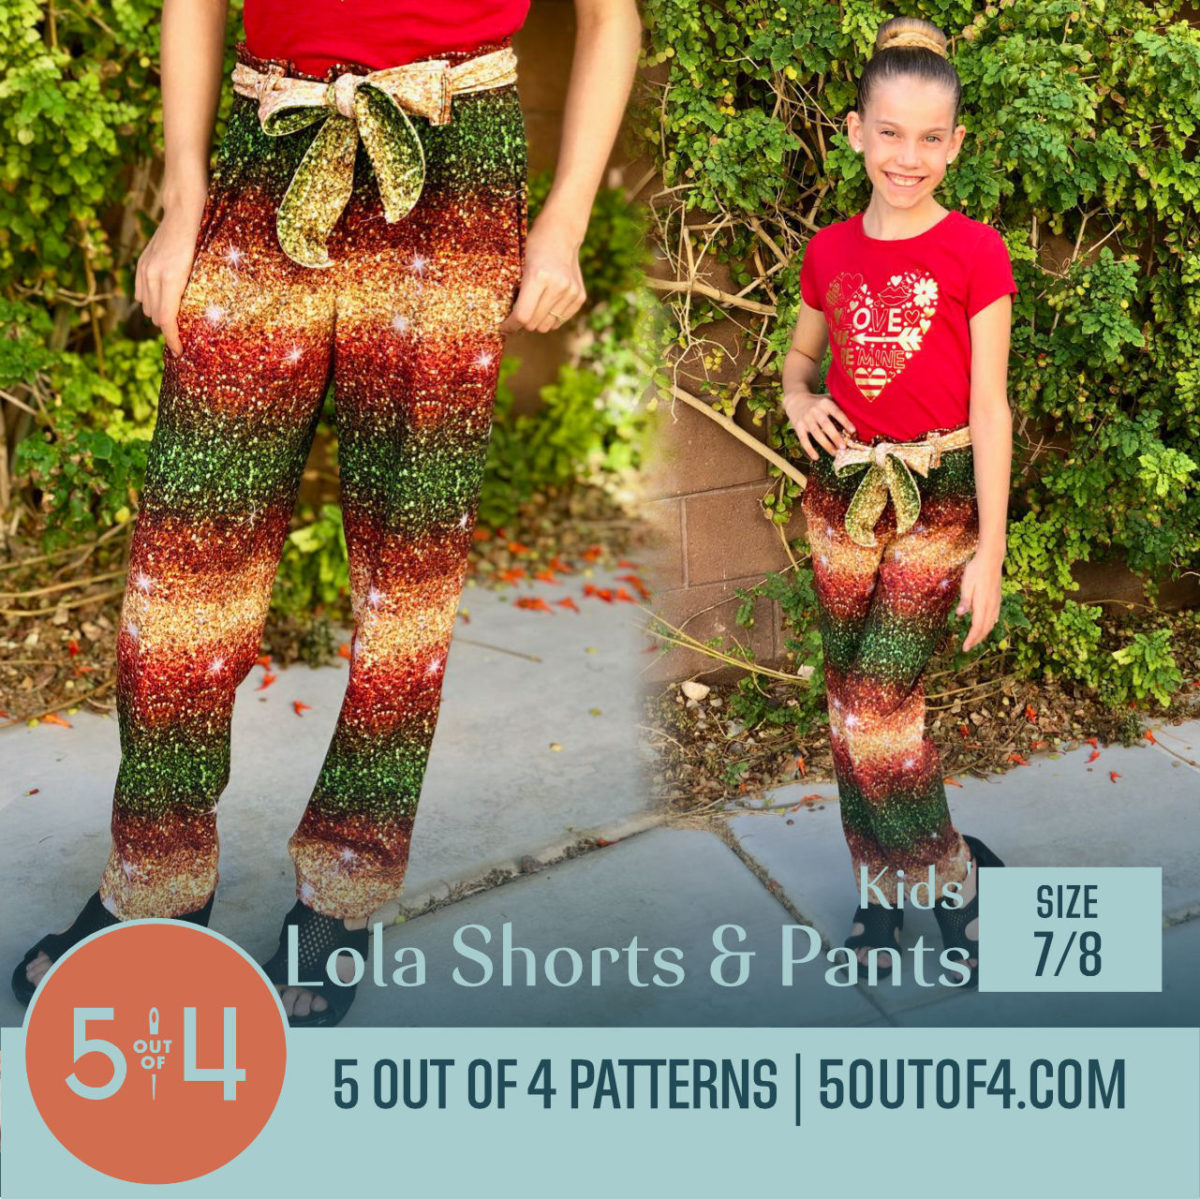 kids lola shorts and pants 7:8